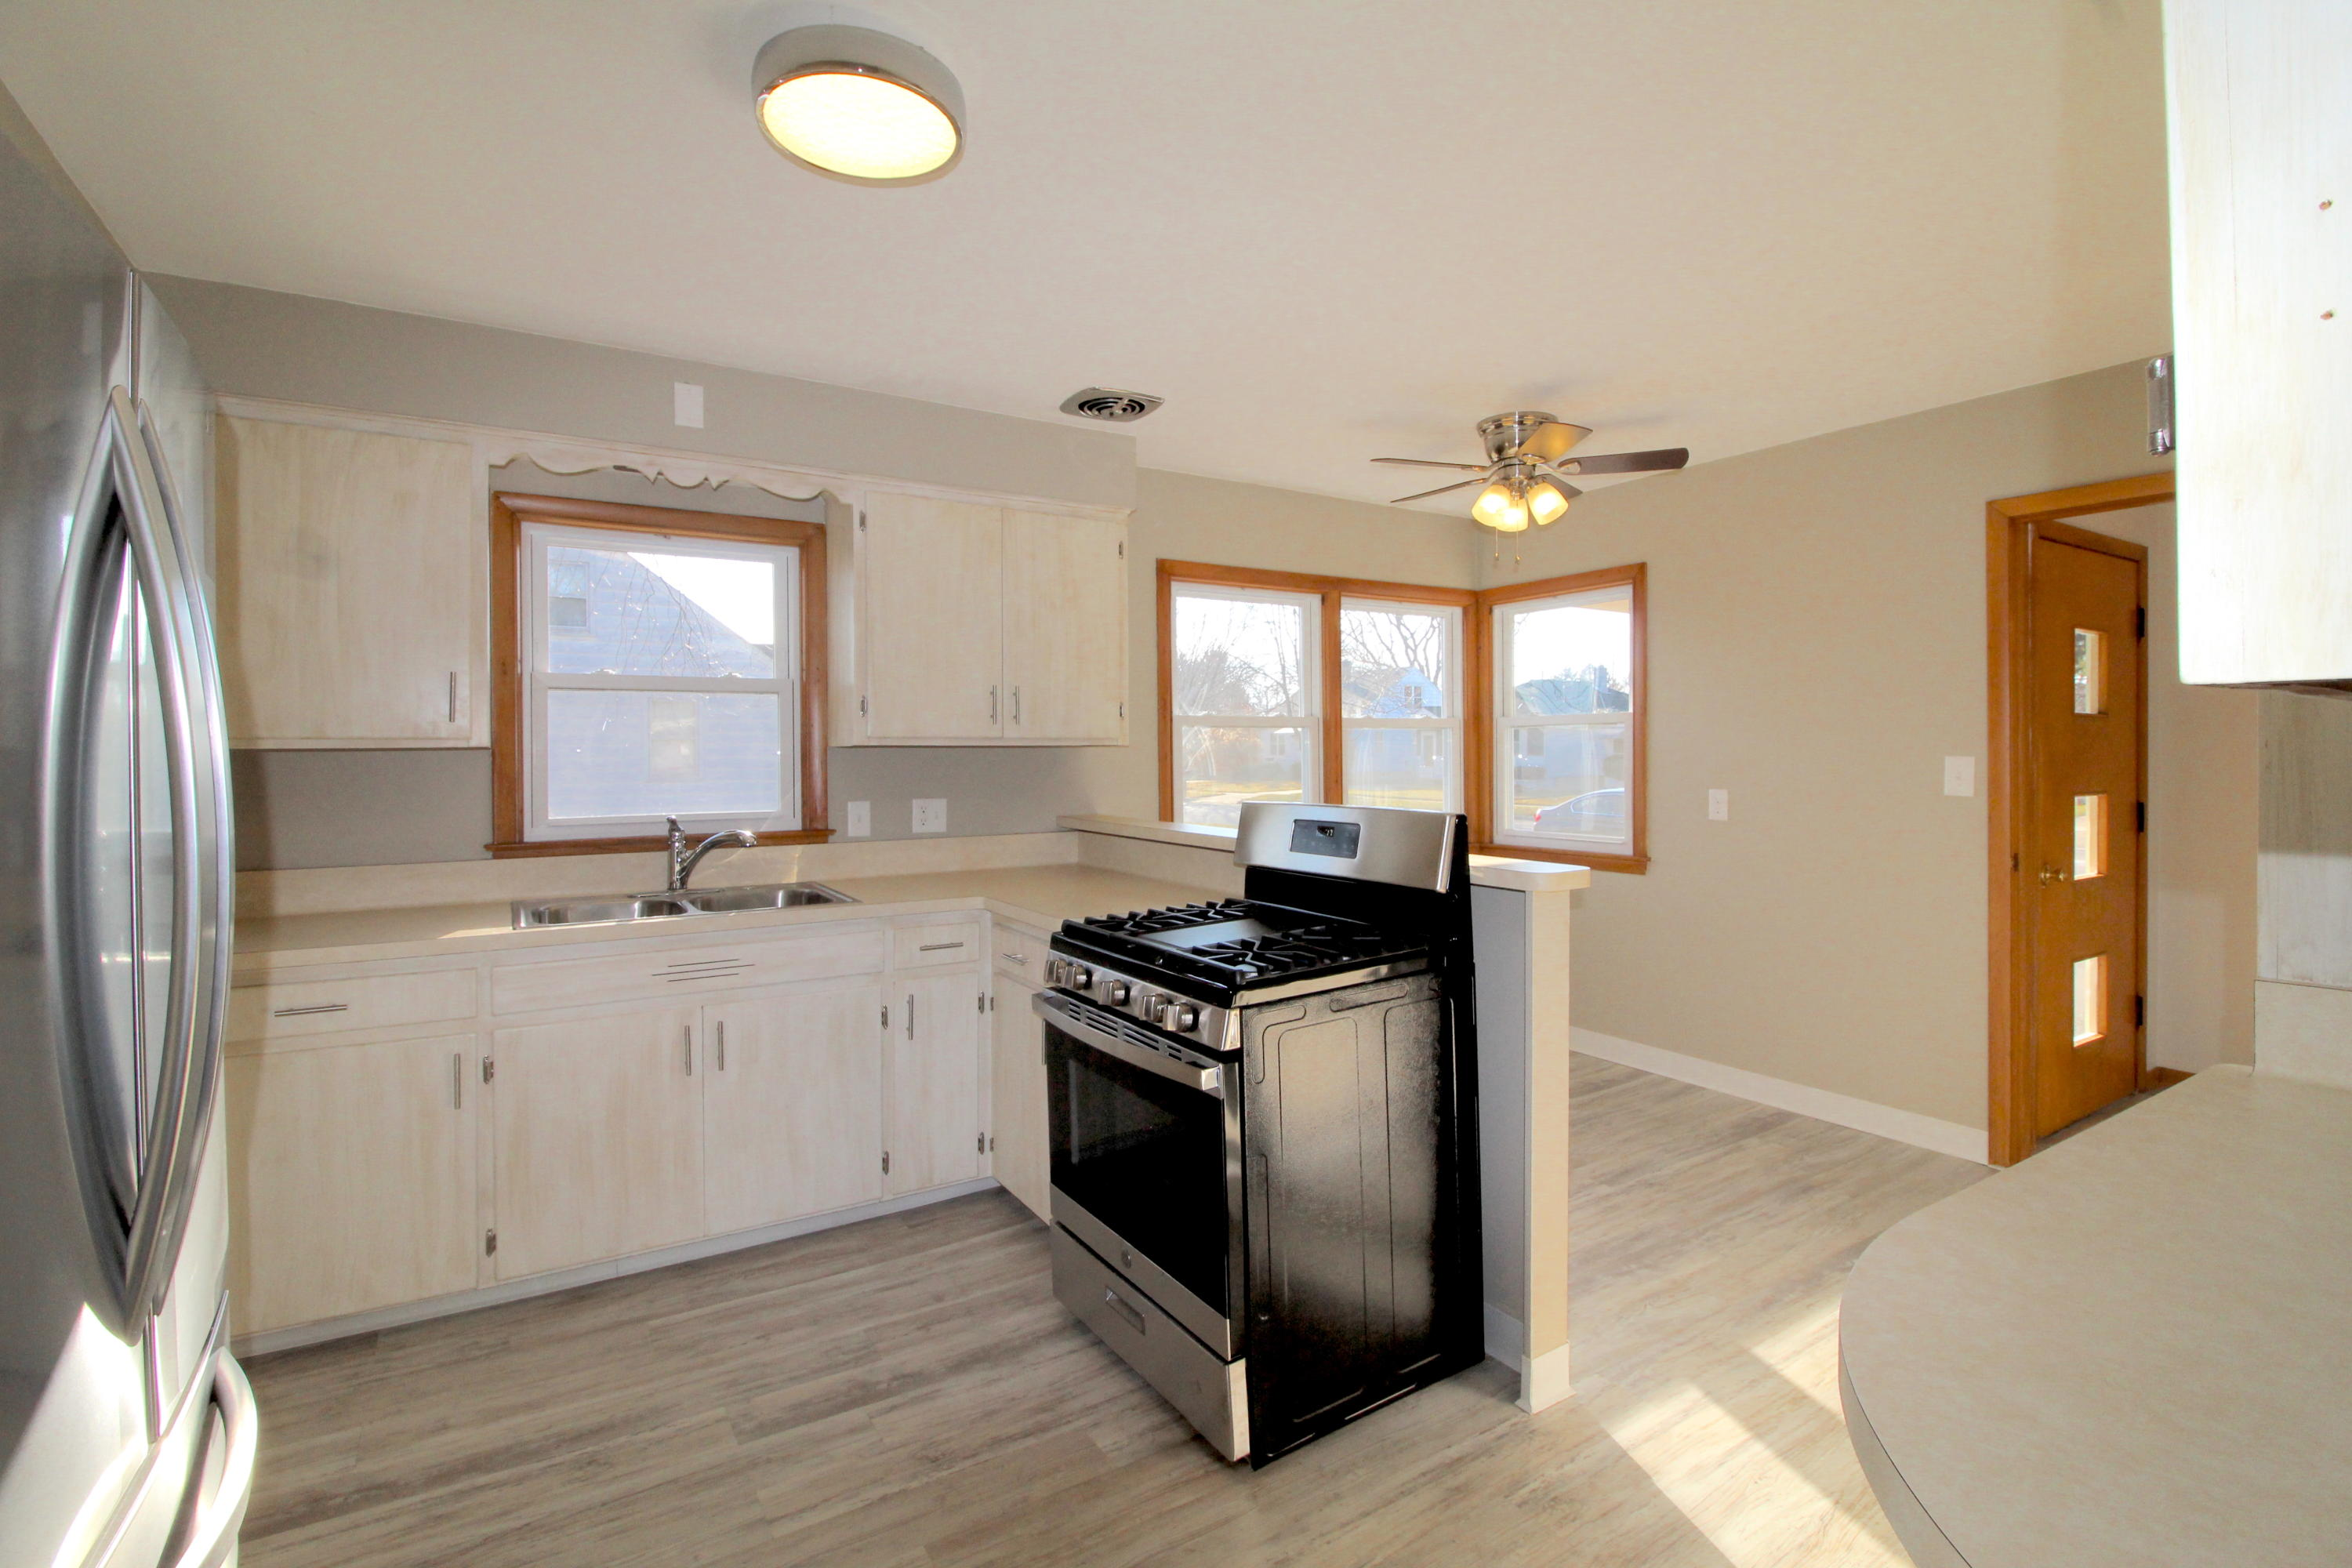 2809 24th Ave, Kenosha, Wisconsin 53140, 3 Bedrooms Bedrooms, ,1 BathroomBathrooms,Single-family,For Sale,24th Ave,1721763